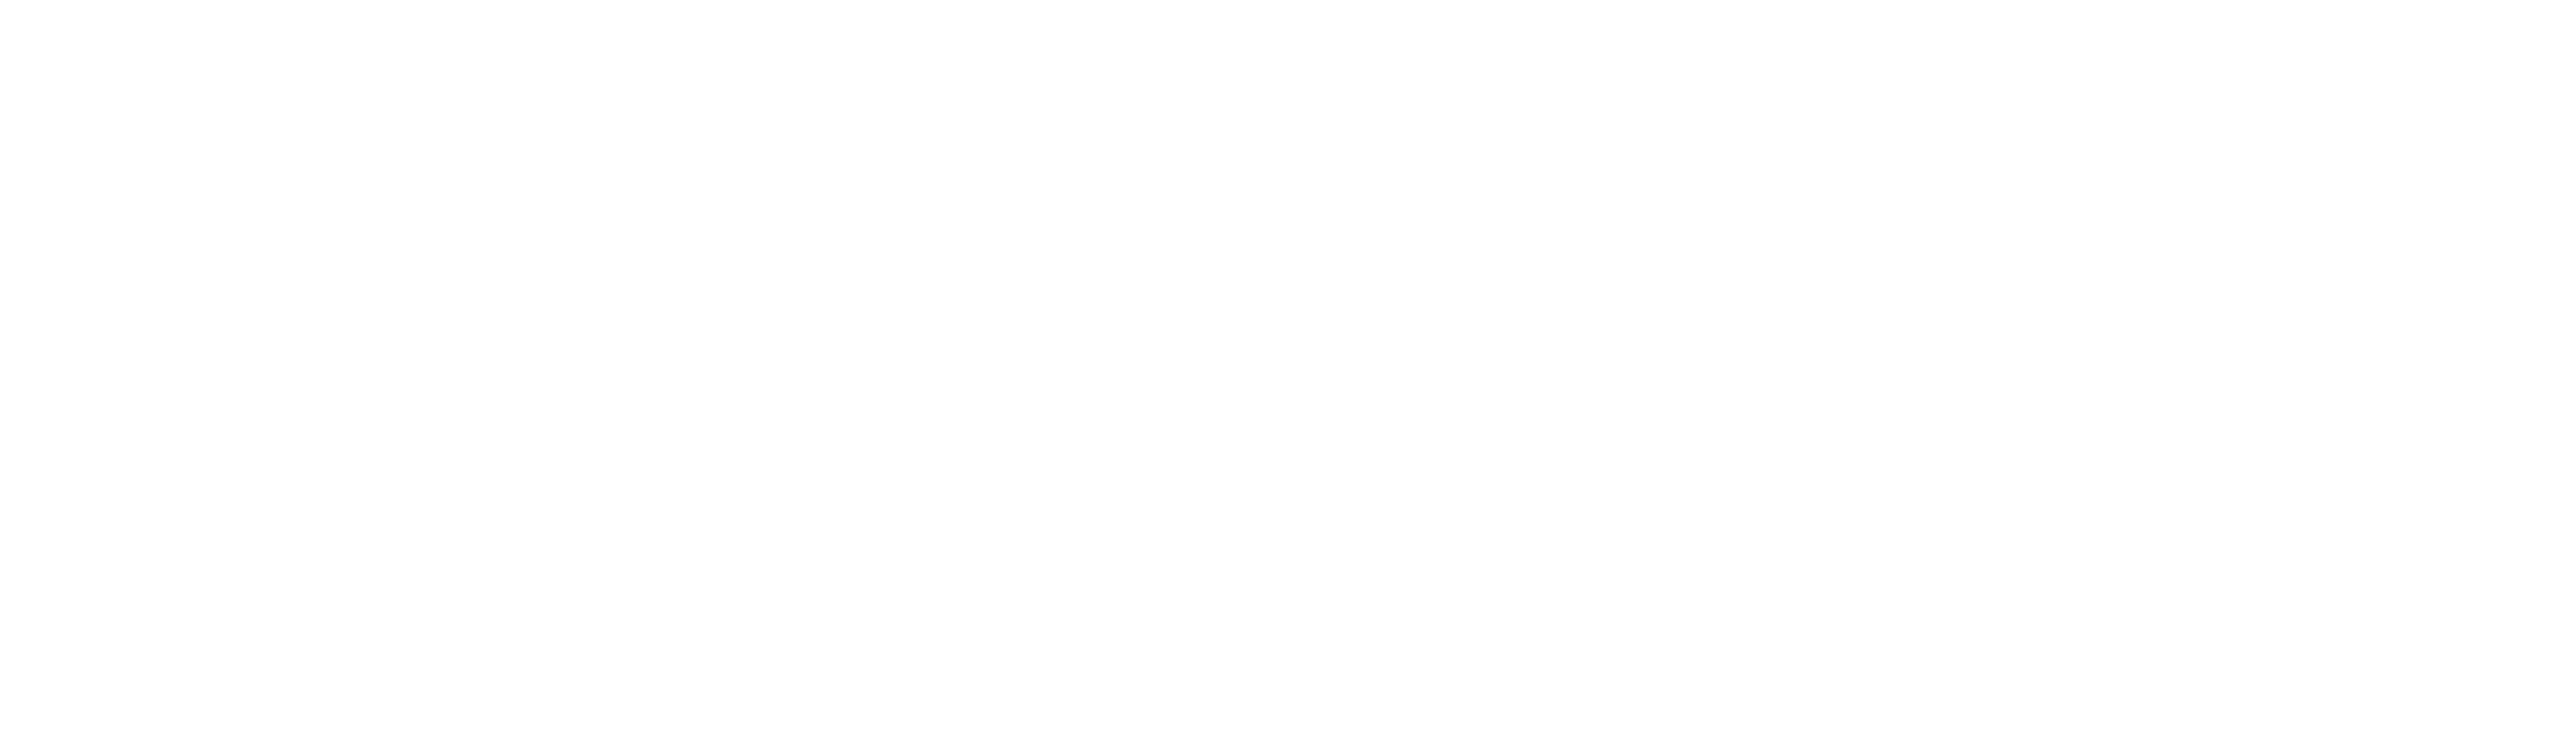 Old mutual wealth private client advisers white